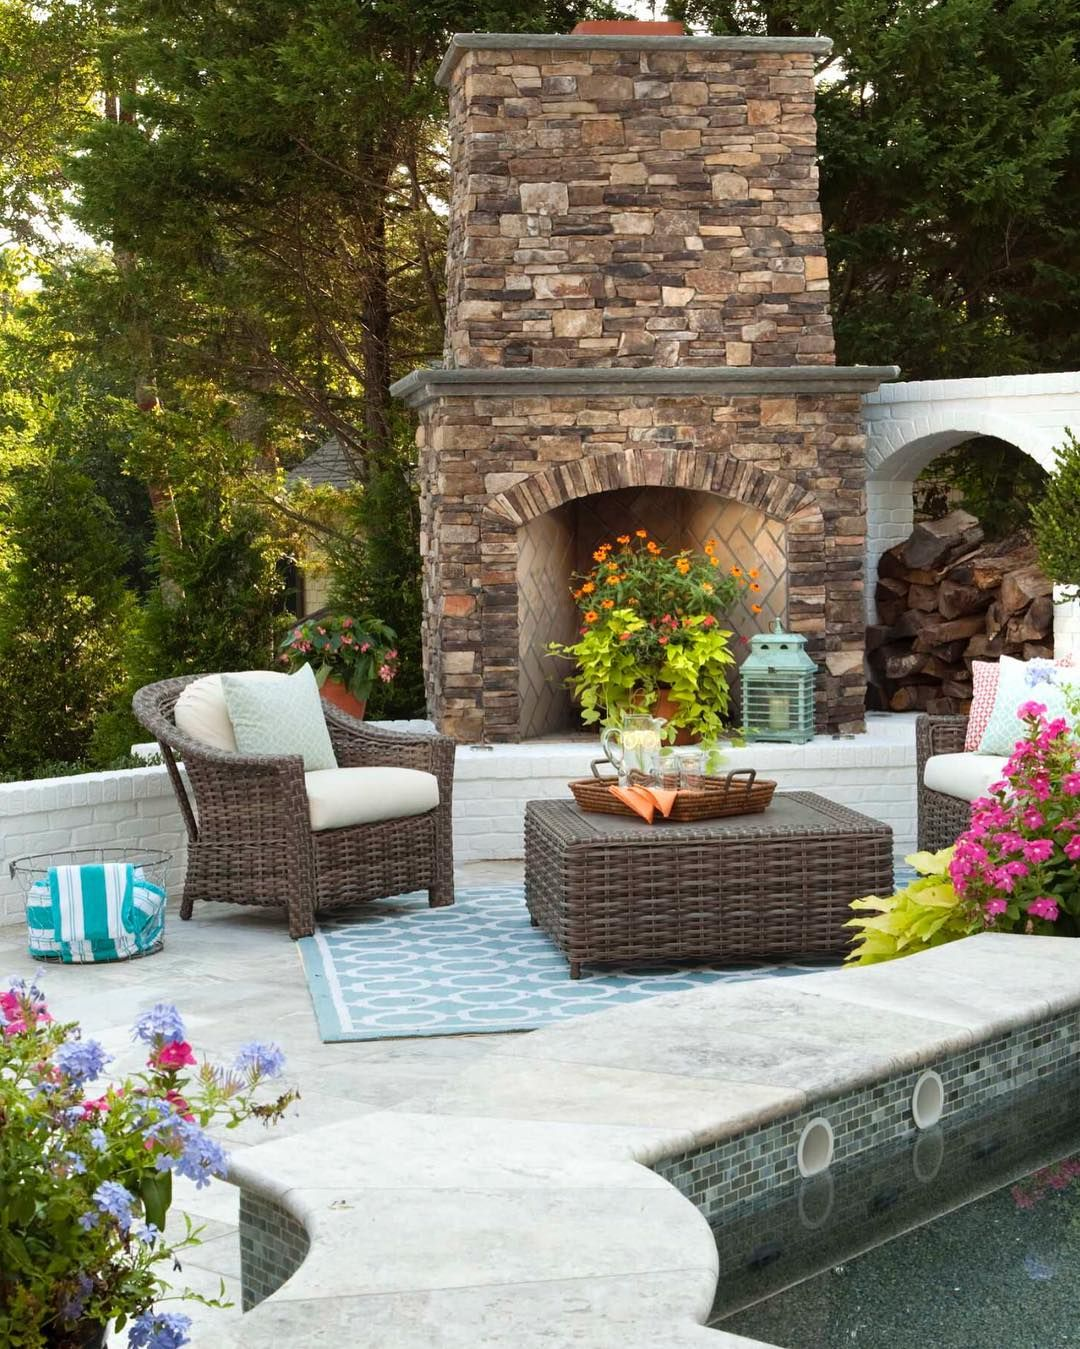 Awesome Small Backyard Patio Design Ideas 01 | Backyard ... on Garden Patio Designs And Layouts id=47220